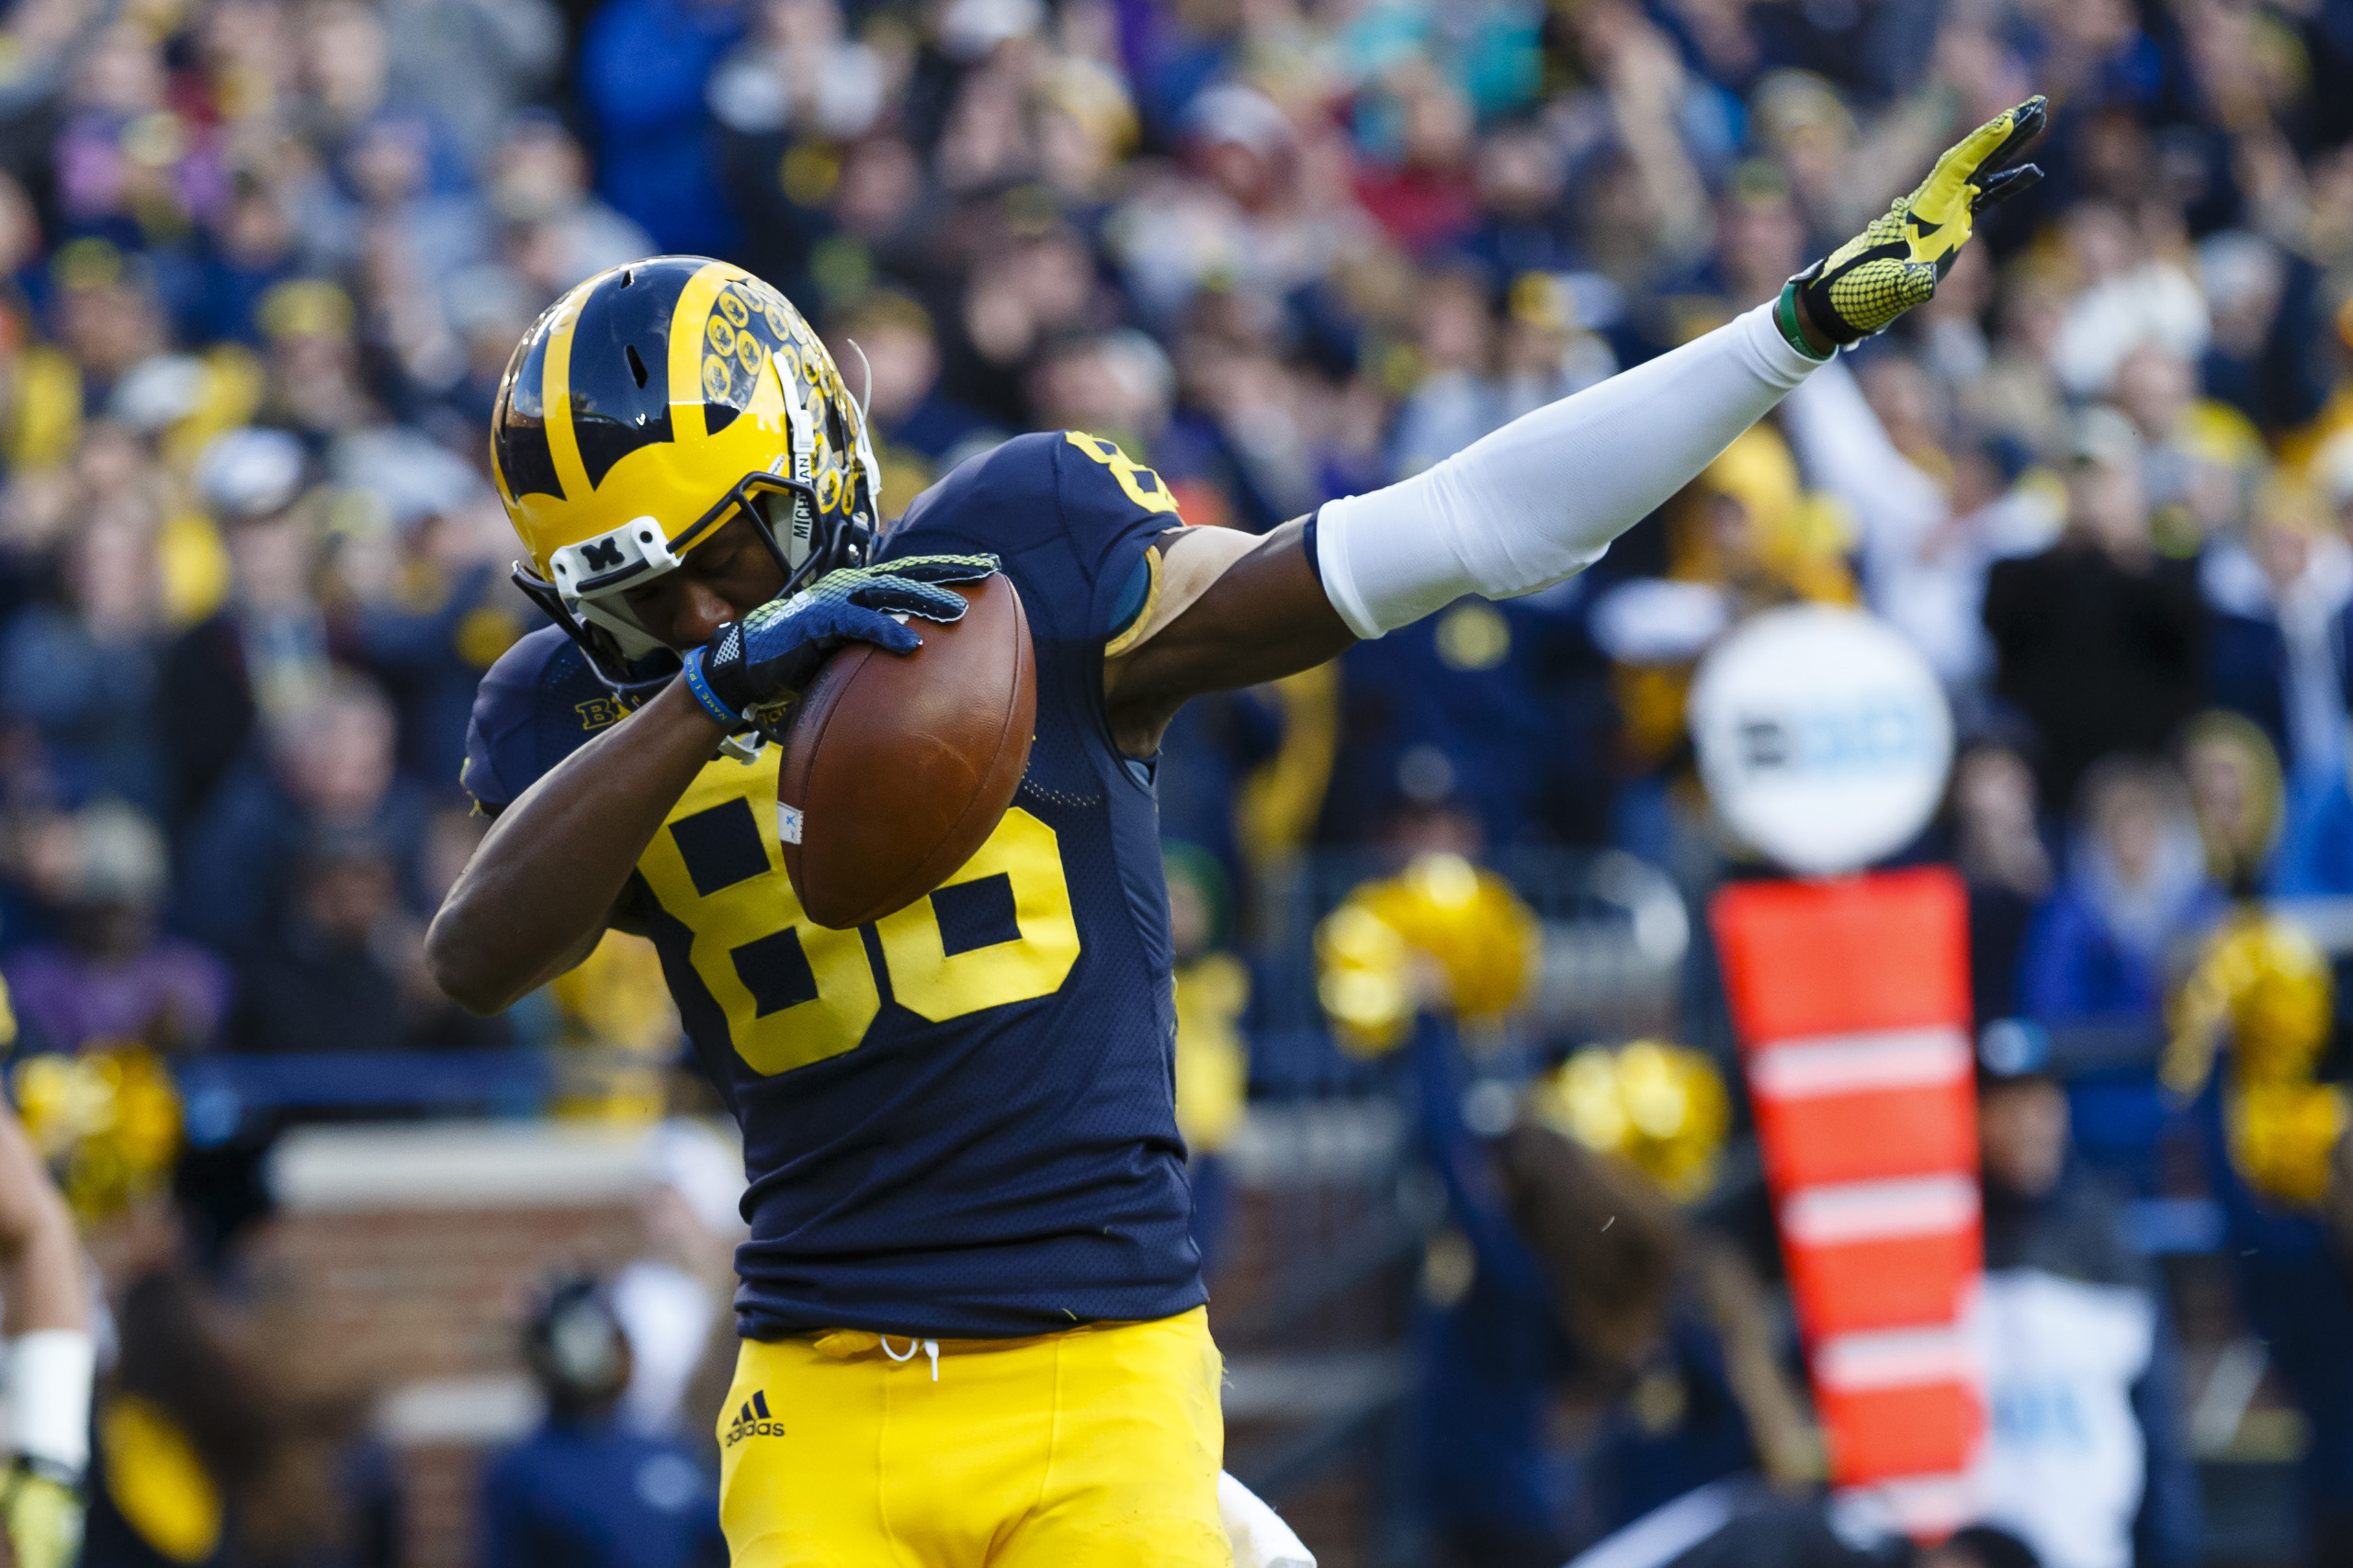 Nov 7, 2015; Ann Arbor, MI, USA; Michigan Wolverines wide receiver Jehu Chesson (86) celebrates his touchdown in the first quarter against the Rutgers Scarlet Knights at Michigan Stadium. Mandatory Credit: Rick Osentoski-USA TODAY Sports